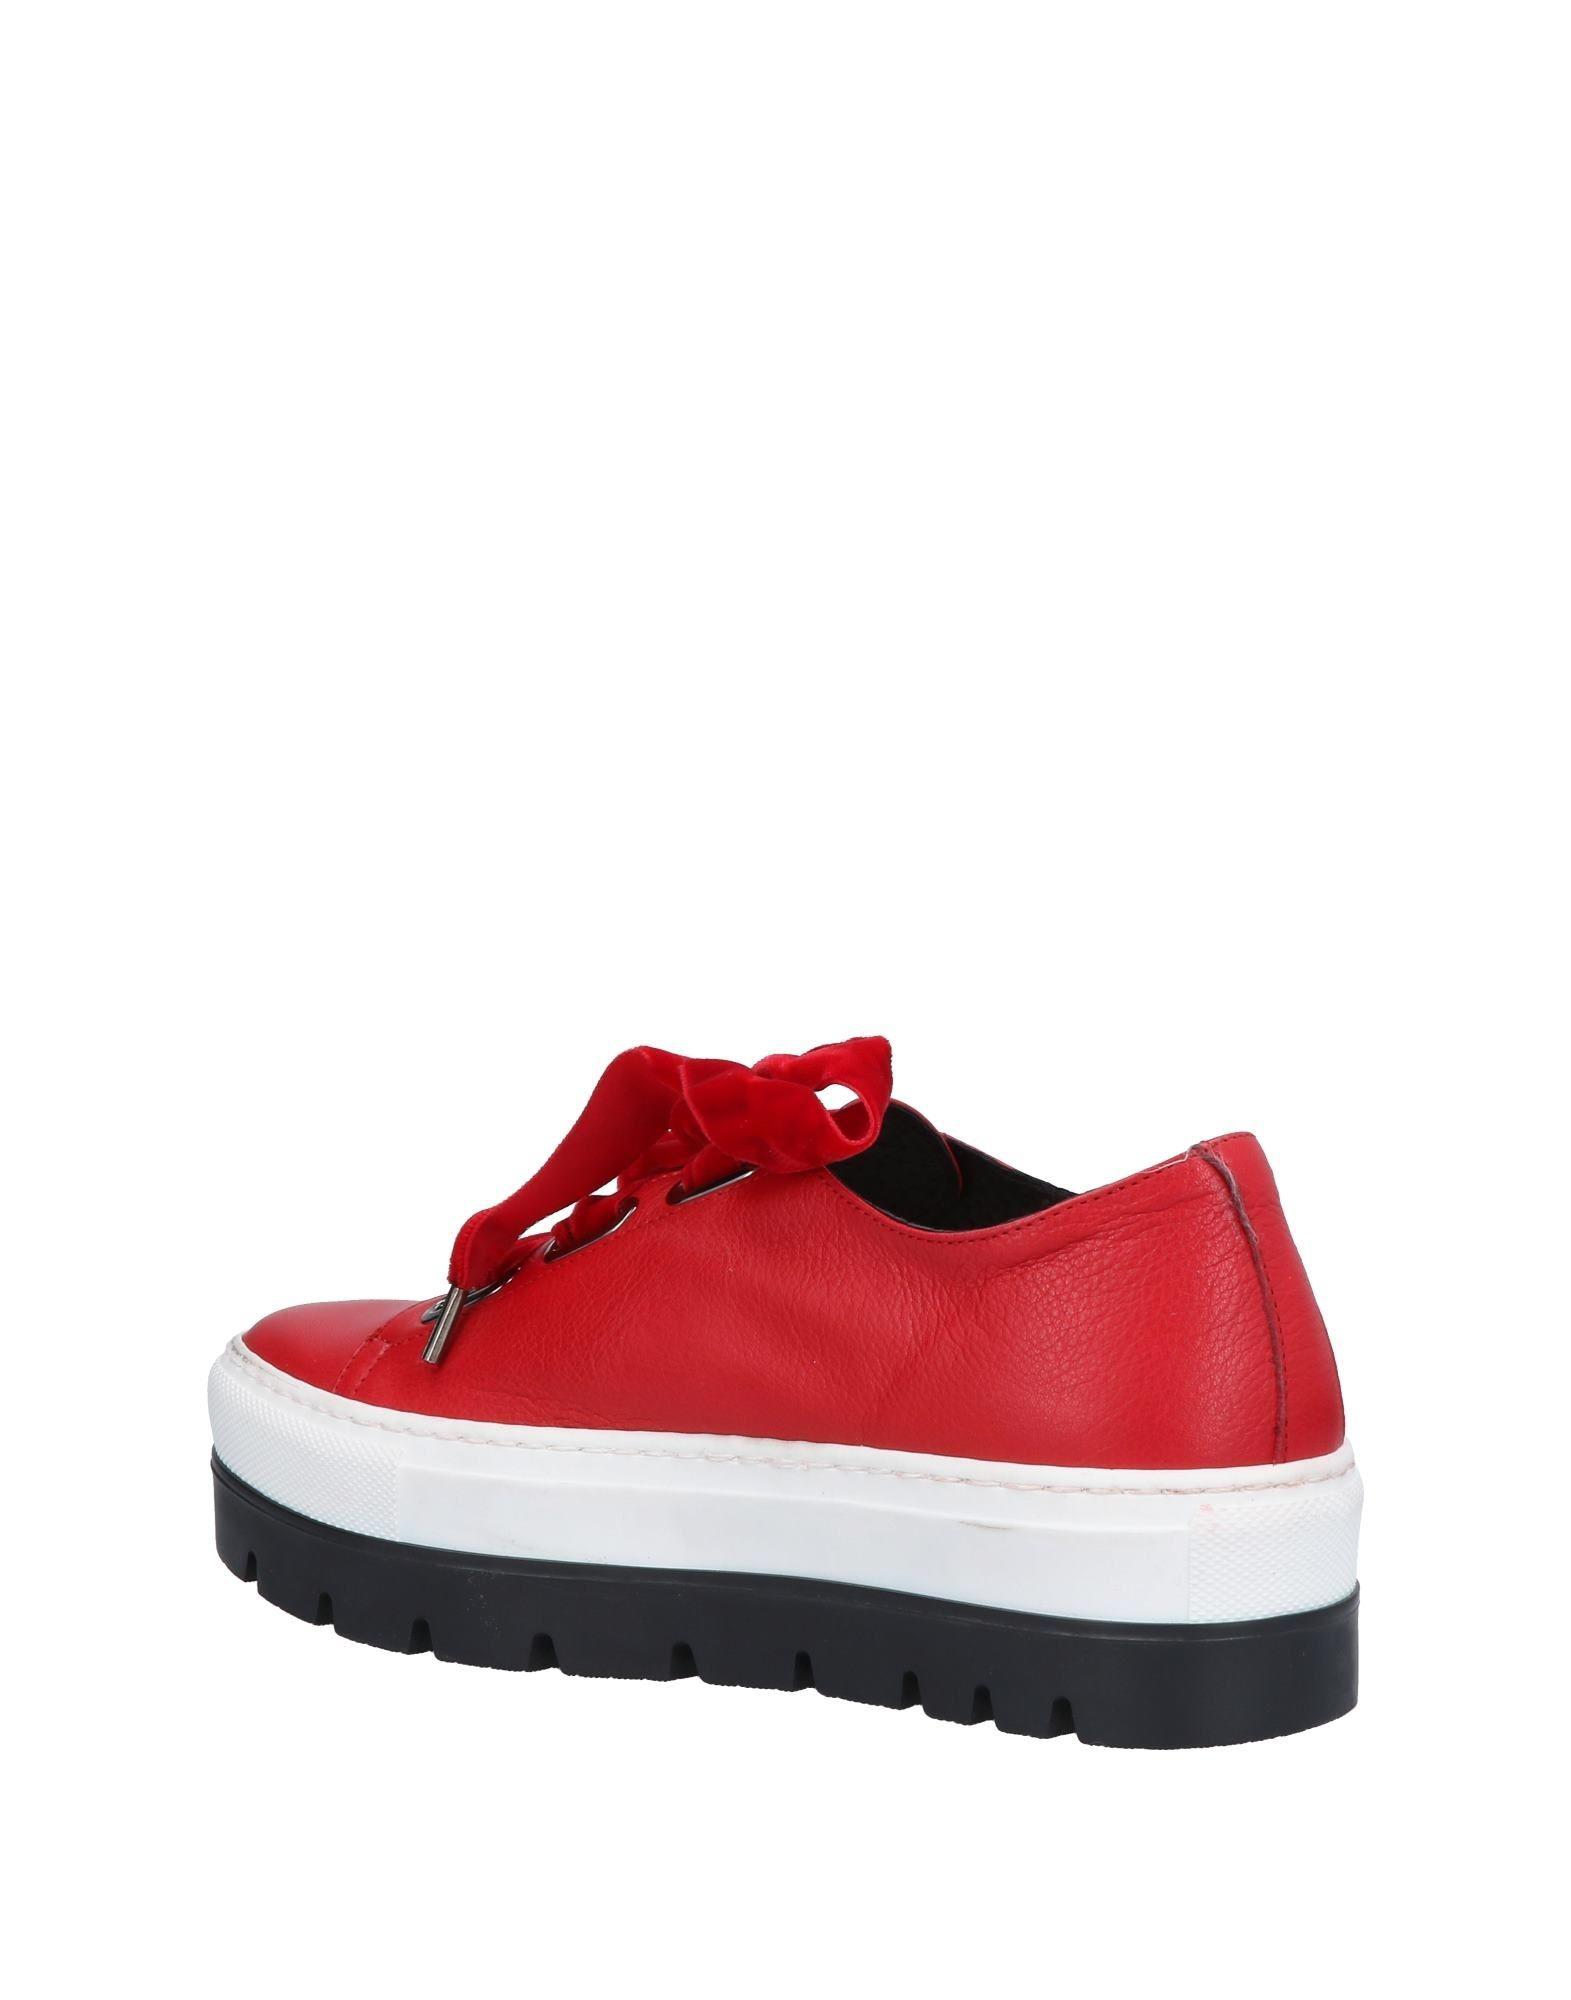 Stele Leather Low-tops & Sneakers in Red